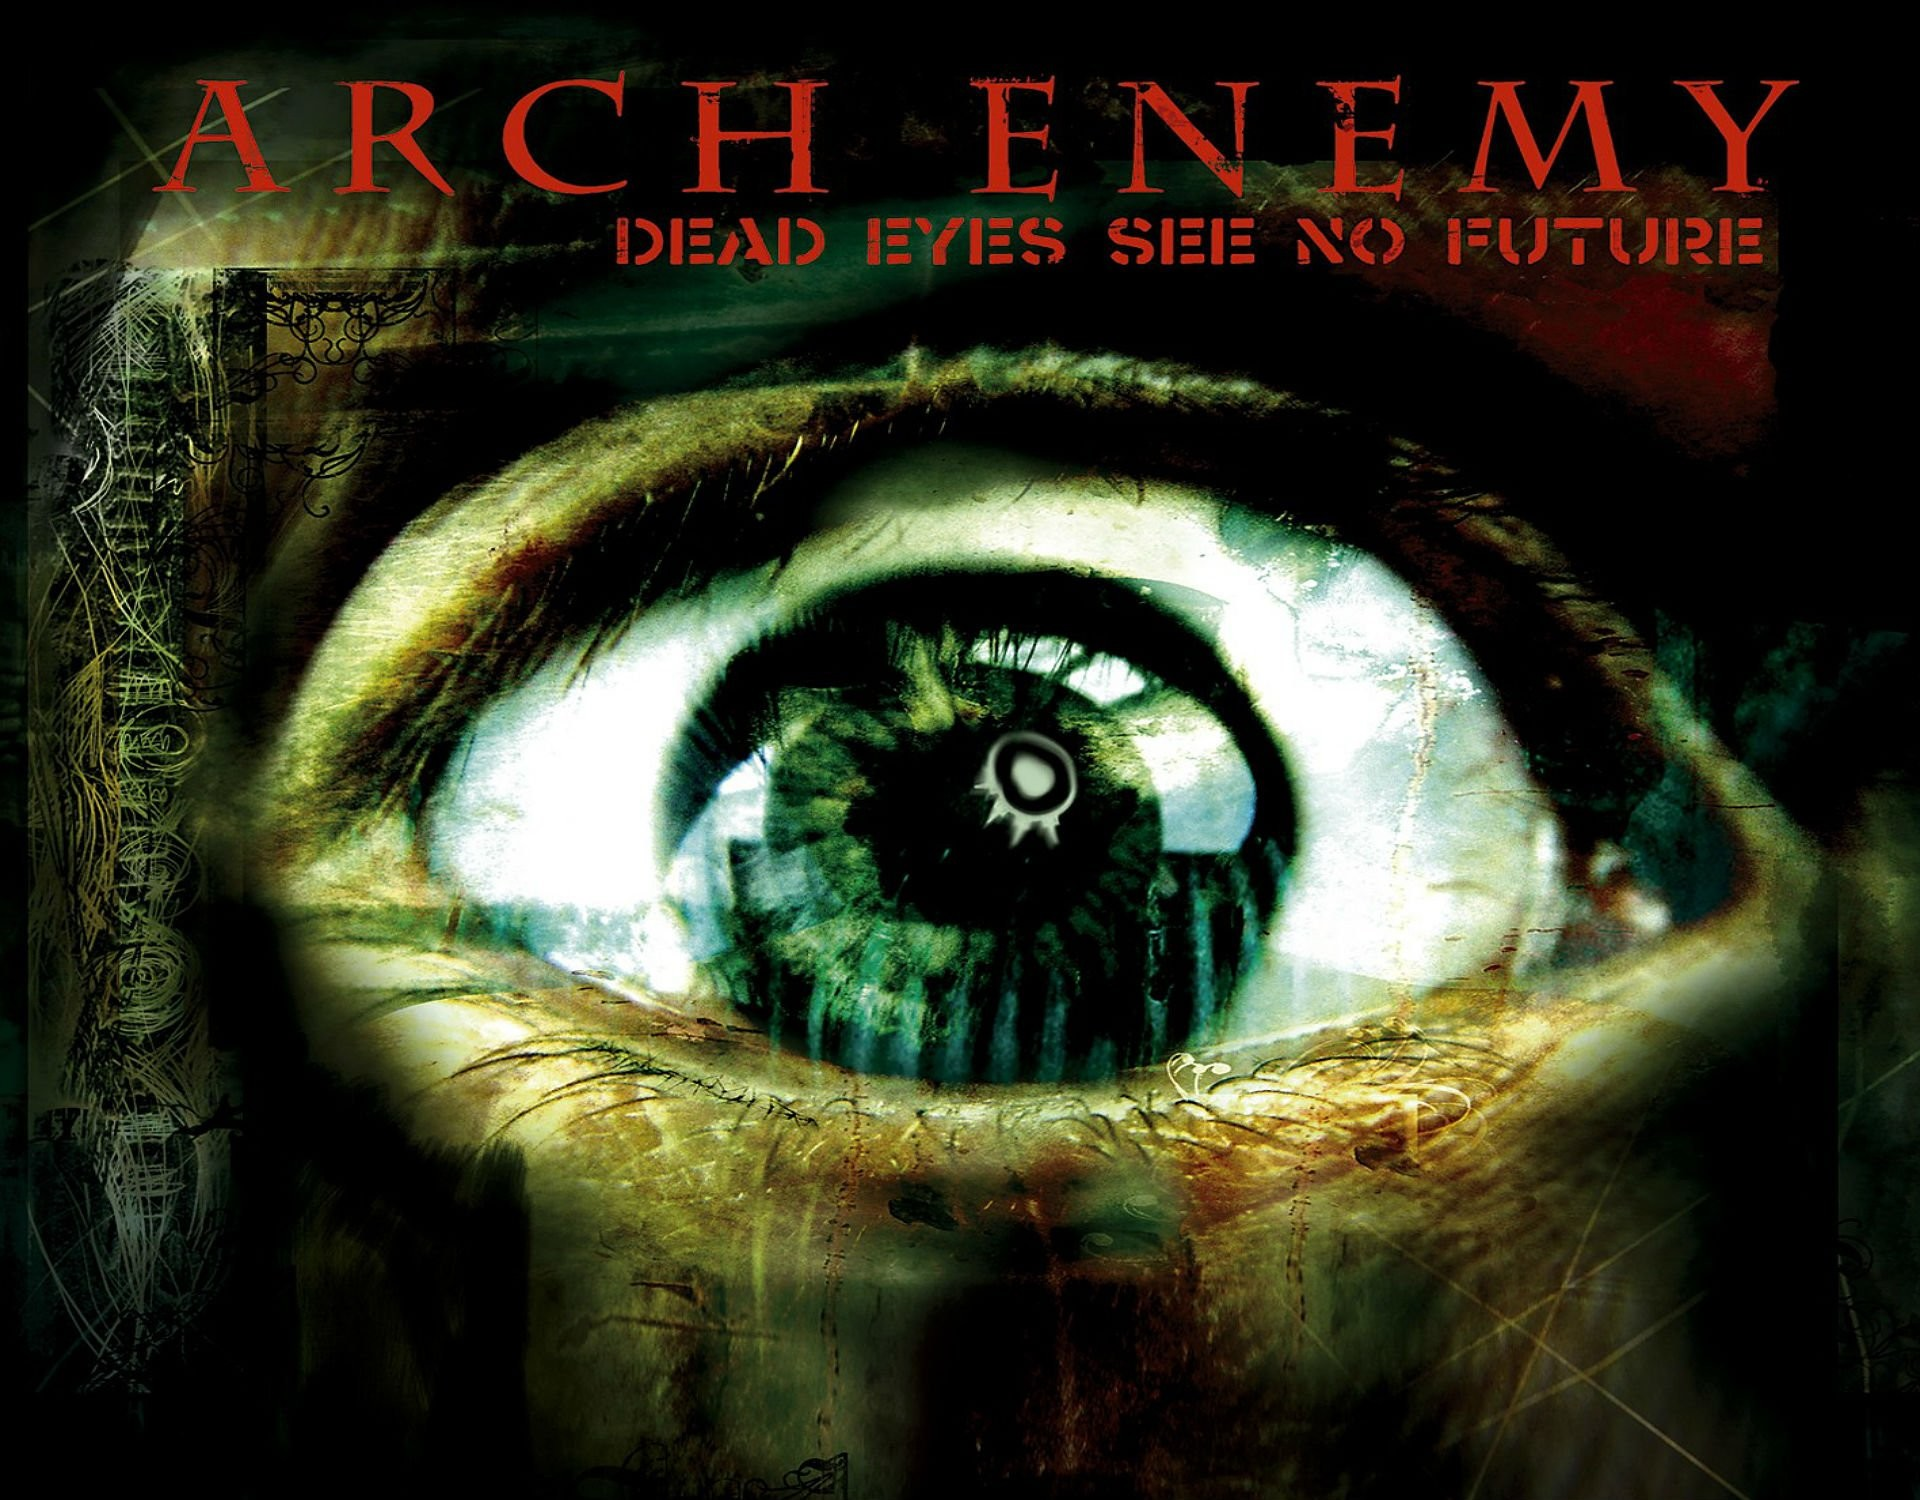 1920x1500 Arch Enemy Death Metal Heavy Progressive Thrash Poster Dark Eye Occult Evil  Satanic Wallpaper At Dark Wallpapers